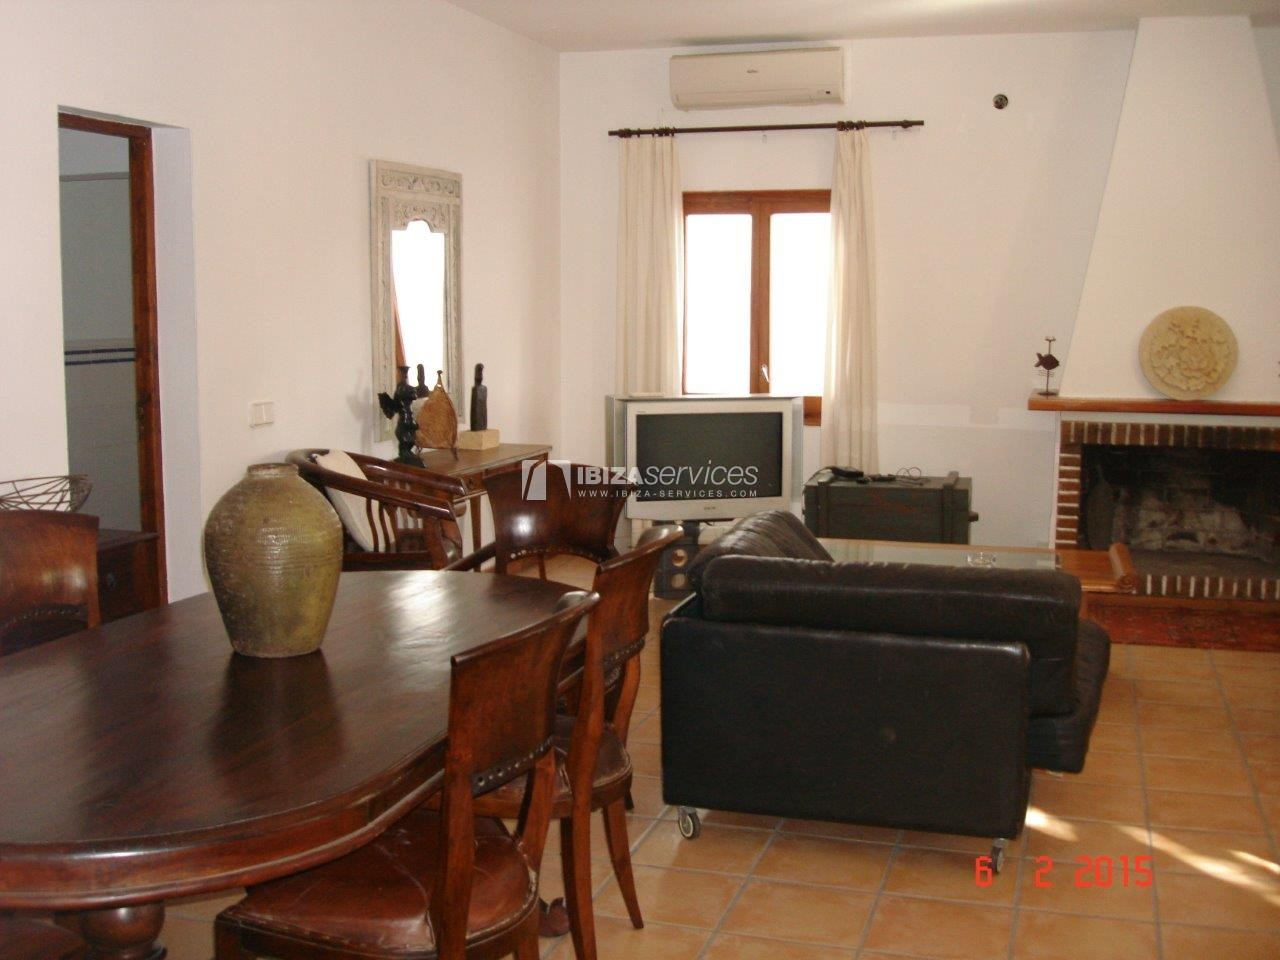 House for sale with tennis court in Sant Rafael perspectiva 4